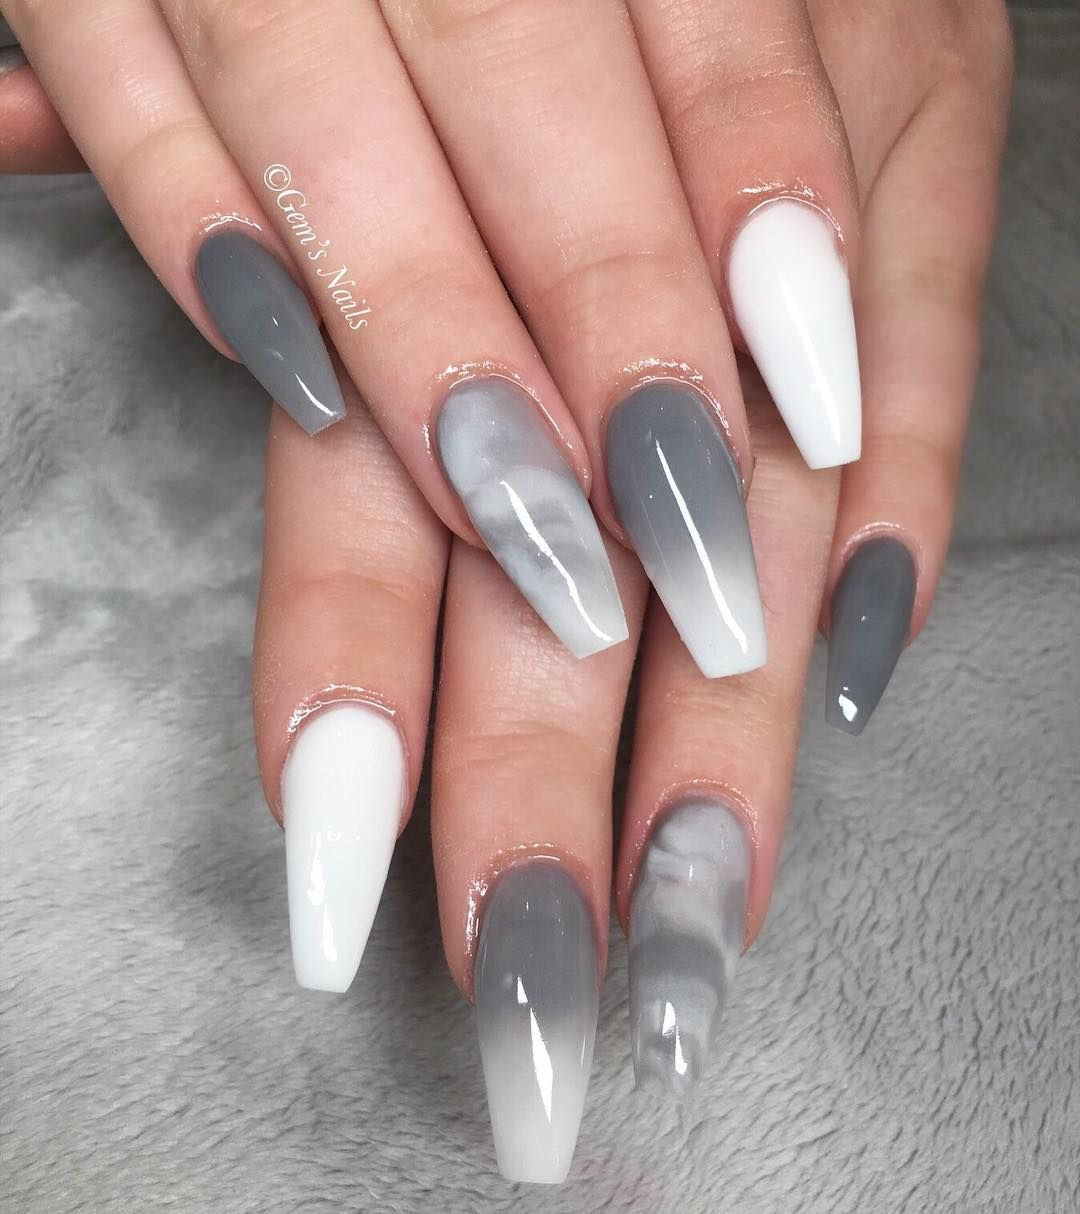 Gem S Nails On Instagram Grey White Nails Nailsofinstagram Acrylicnails Acrylicnaildesign Manchest White Acrylic Nails Gem Nails Best Acrylic Nails